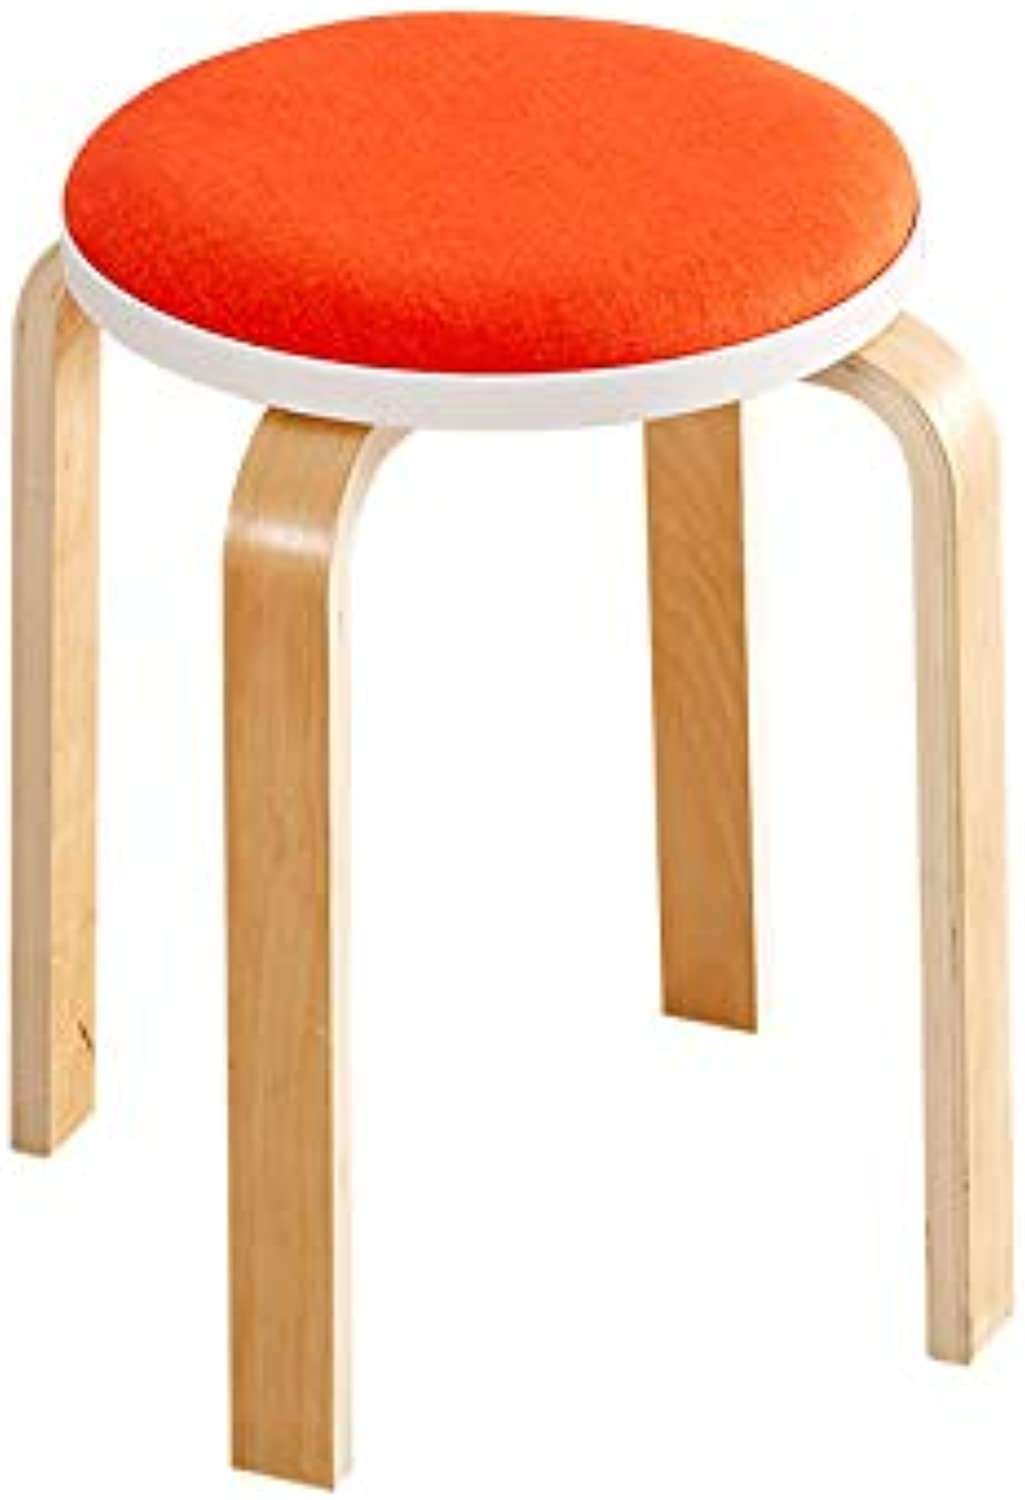 Small Bench Fashion Cloth orange Multi-Function Chair High Stool Dressing Stool Living Room Dining Room Bench (color   A, Size   45x32cm)